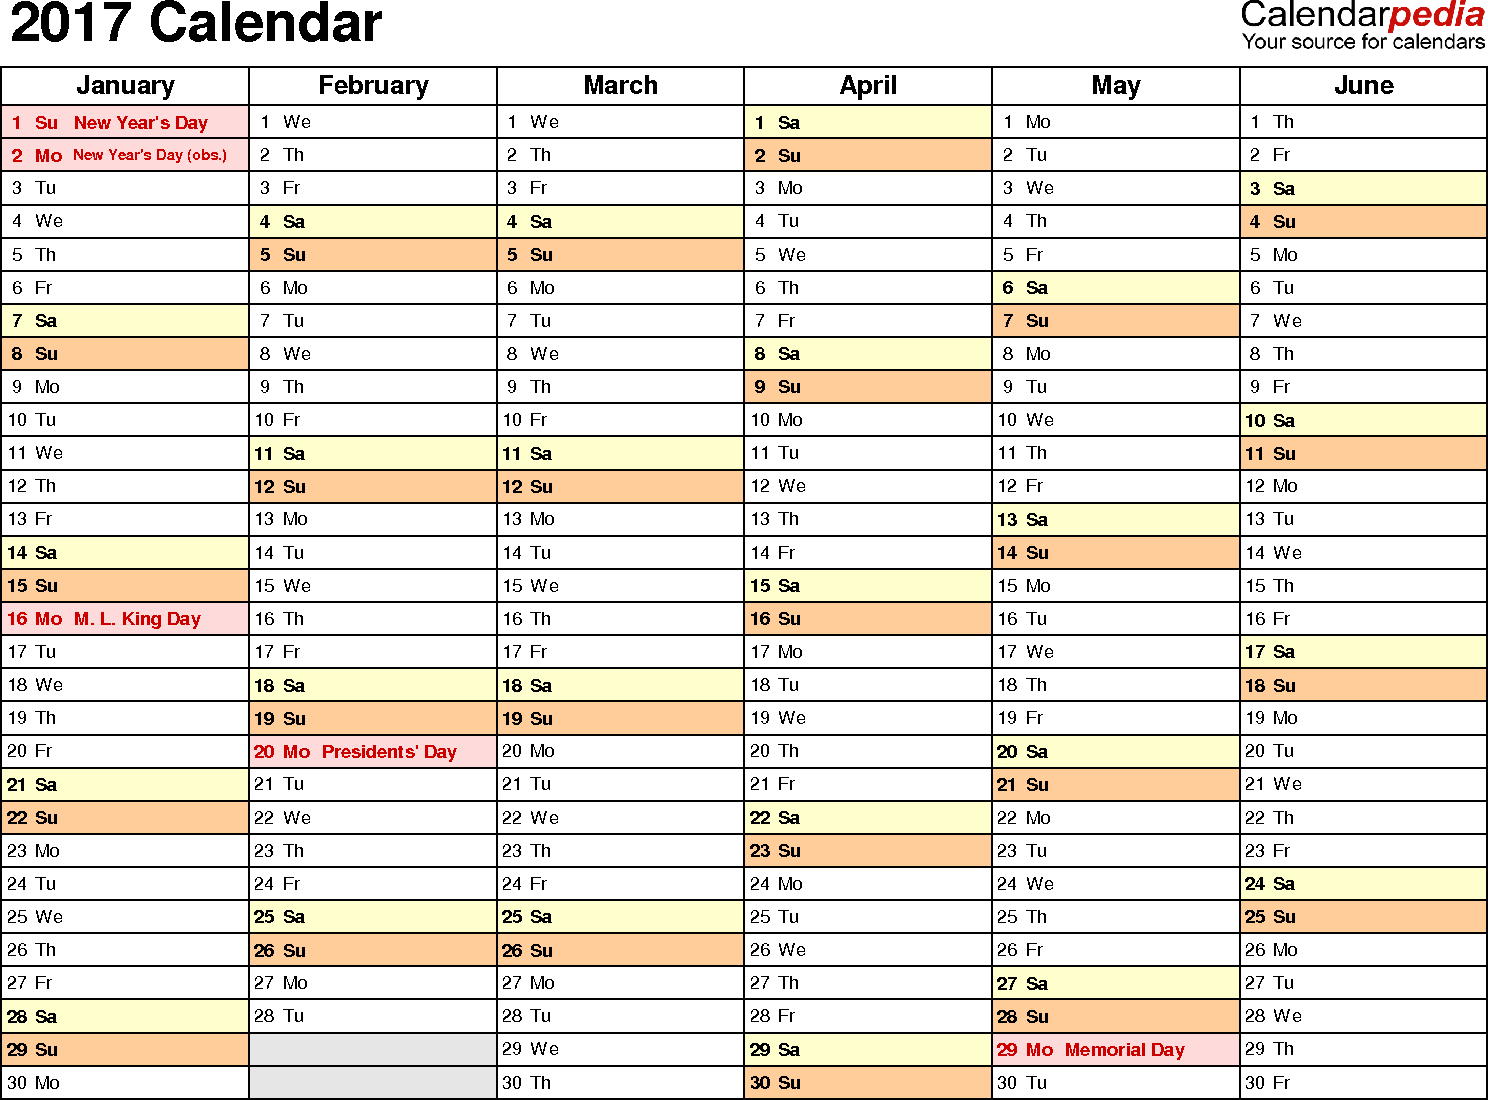 Ediblewildsus  Seductive  Calendar  Download  Free Printable Excel Templates Xls With Interesting Template   Calendar For Excel Months Horizontally  Pages Landscape Orientation With Charming Oracle Excel Add In Also Open Xml Excel In Addition Excel Count By Cell Color And Excel Macro Syntax As Well As Excel Applicationontime Additionally Making An Excel Graph From Calendarpediacom With Ediblewildsus  Interesting  Calendar  Download  Free Printable Excel Templates Xls With Charming Template   Calendar For Excel Months Horizontally  Pages Landscape Orientation And Seductive Oracle Excel Add In Also Open Xml Excel In Addition Excel Count By Cell Color From Calendarpediacom